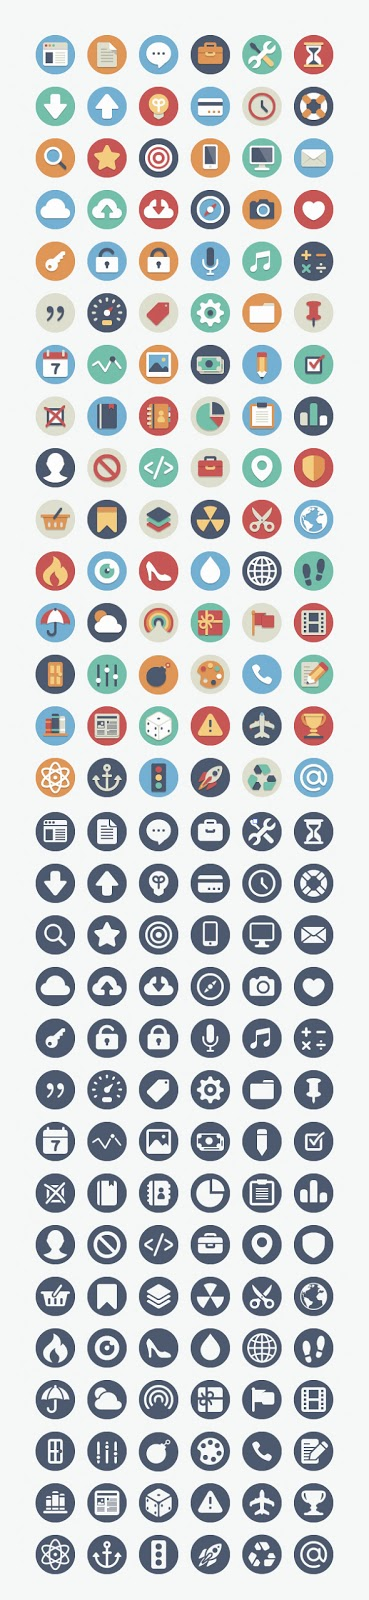 90 Free Beautiful Flat Icons